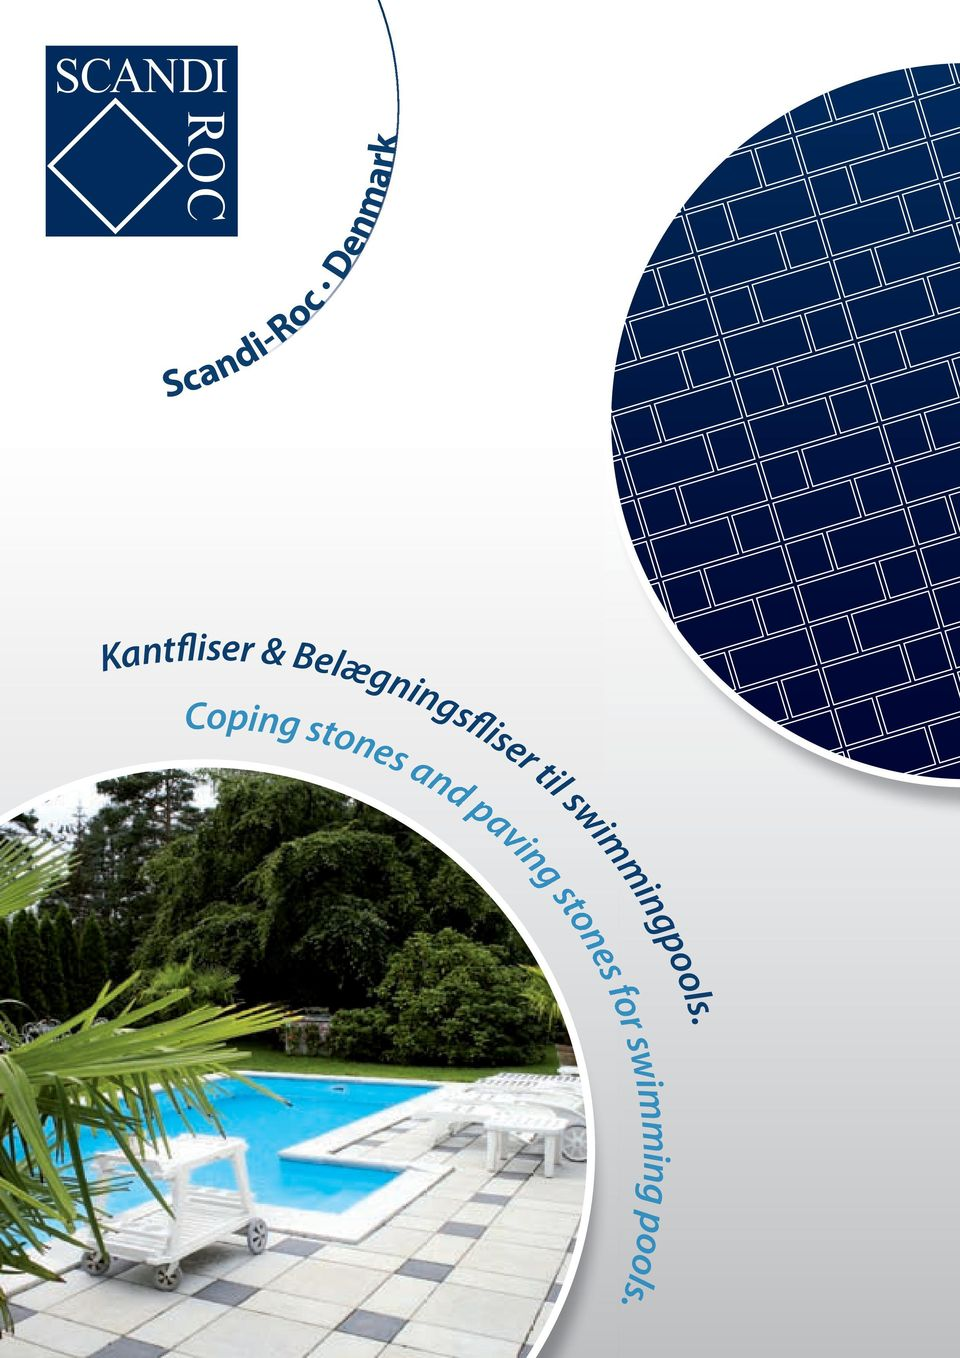 Coping stones and paving stones for swimming